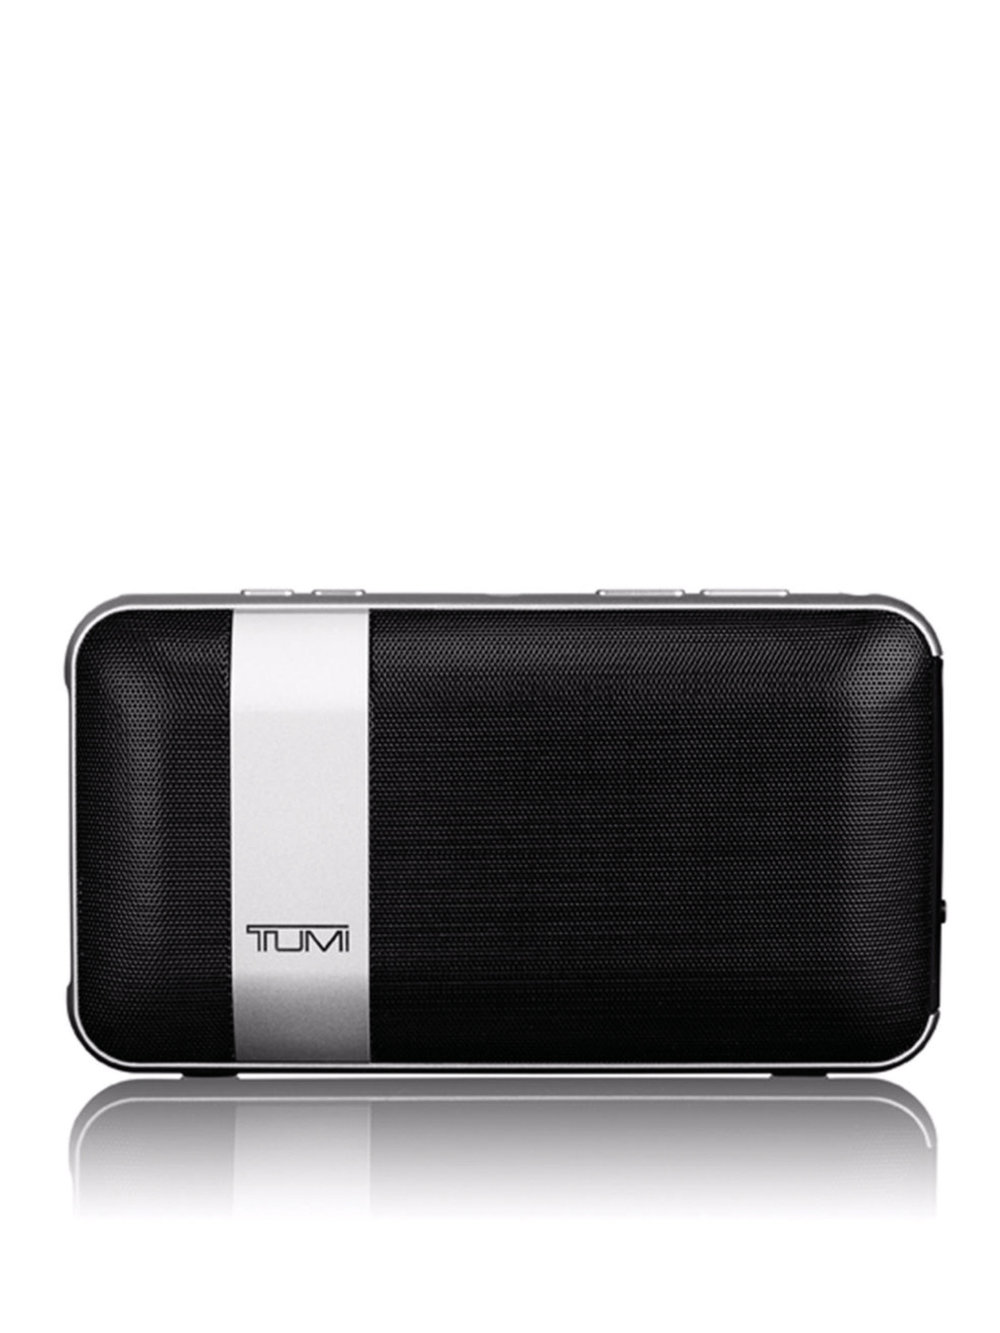 9.Wireless Portable Speaker with Powerbank by Tumi ‬$200,  saksfifthavenue.com